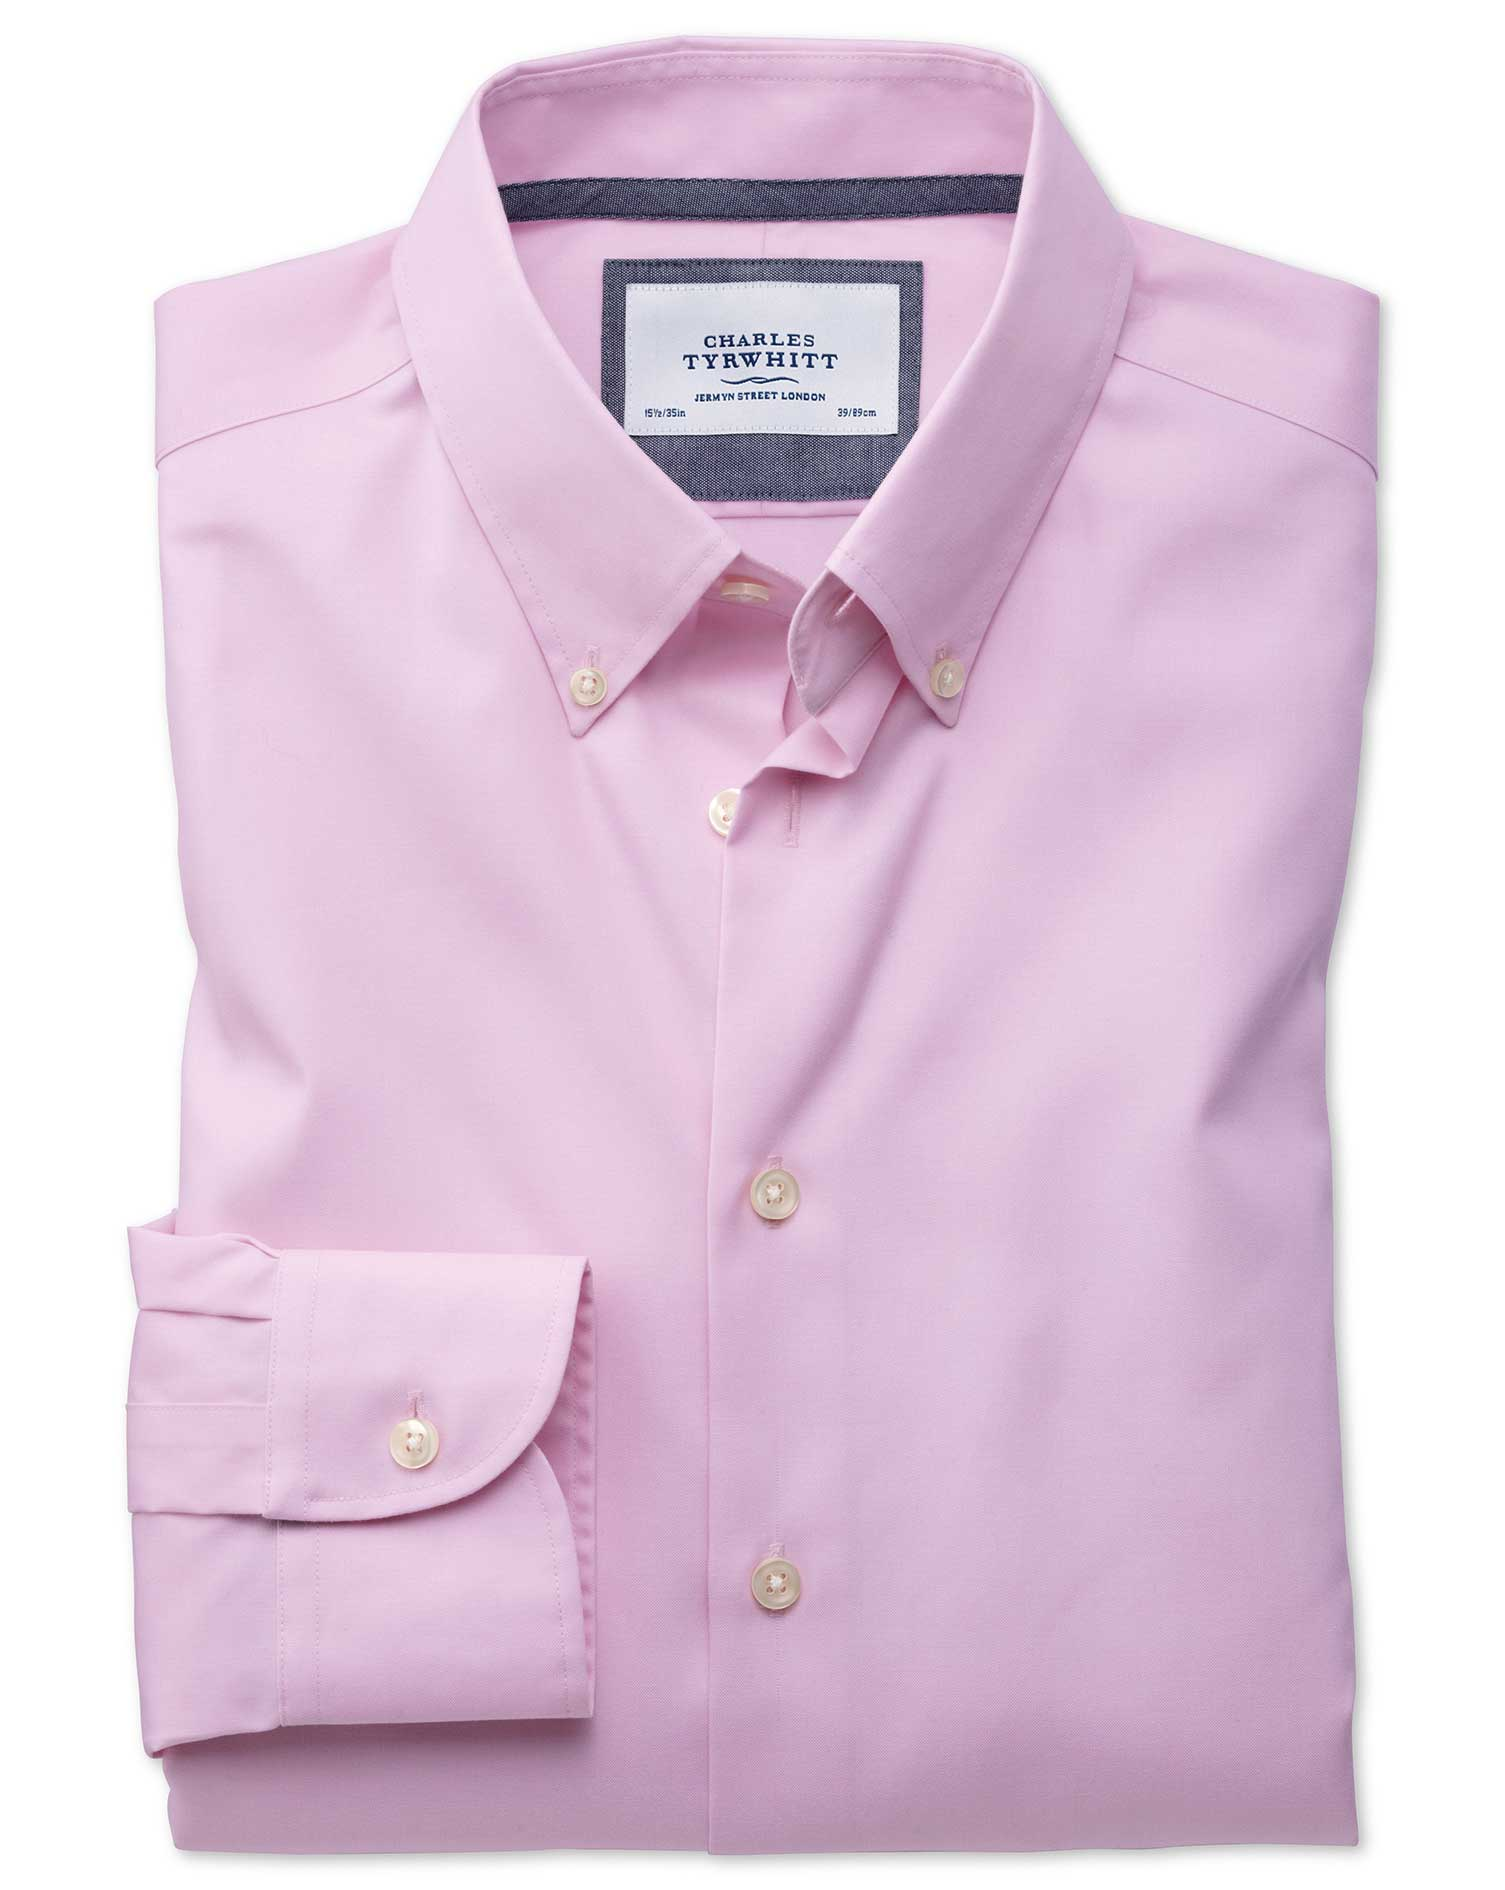 Classic Fit Button-Down Business Casual Non-Iron Light Pink Cotton Formal Shirt Single Cuff Size 16/